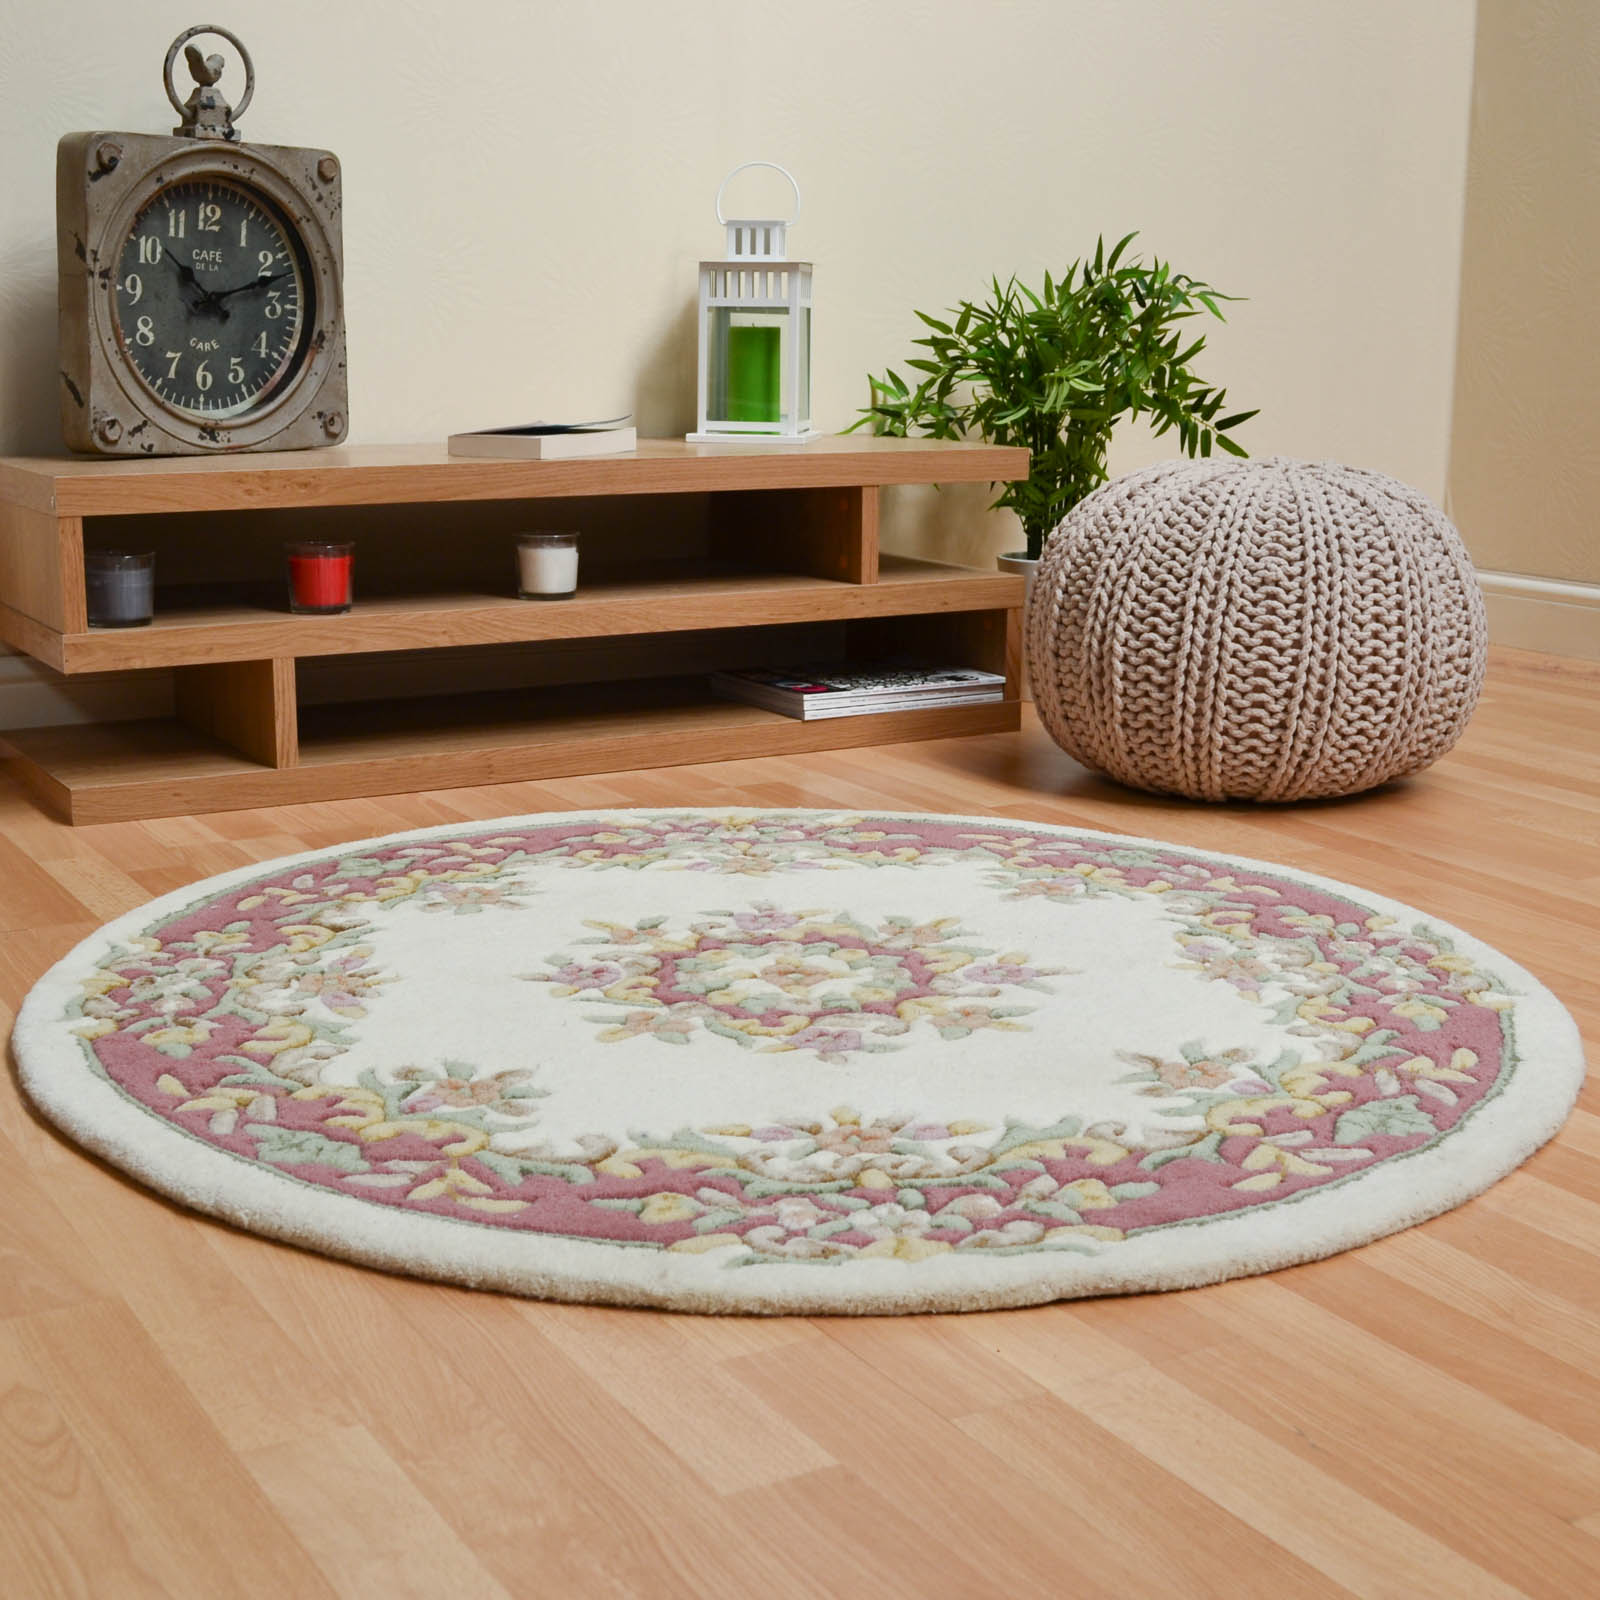 Jewel Circular Wool Rugs in Ivory Pink